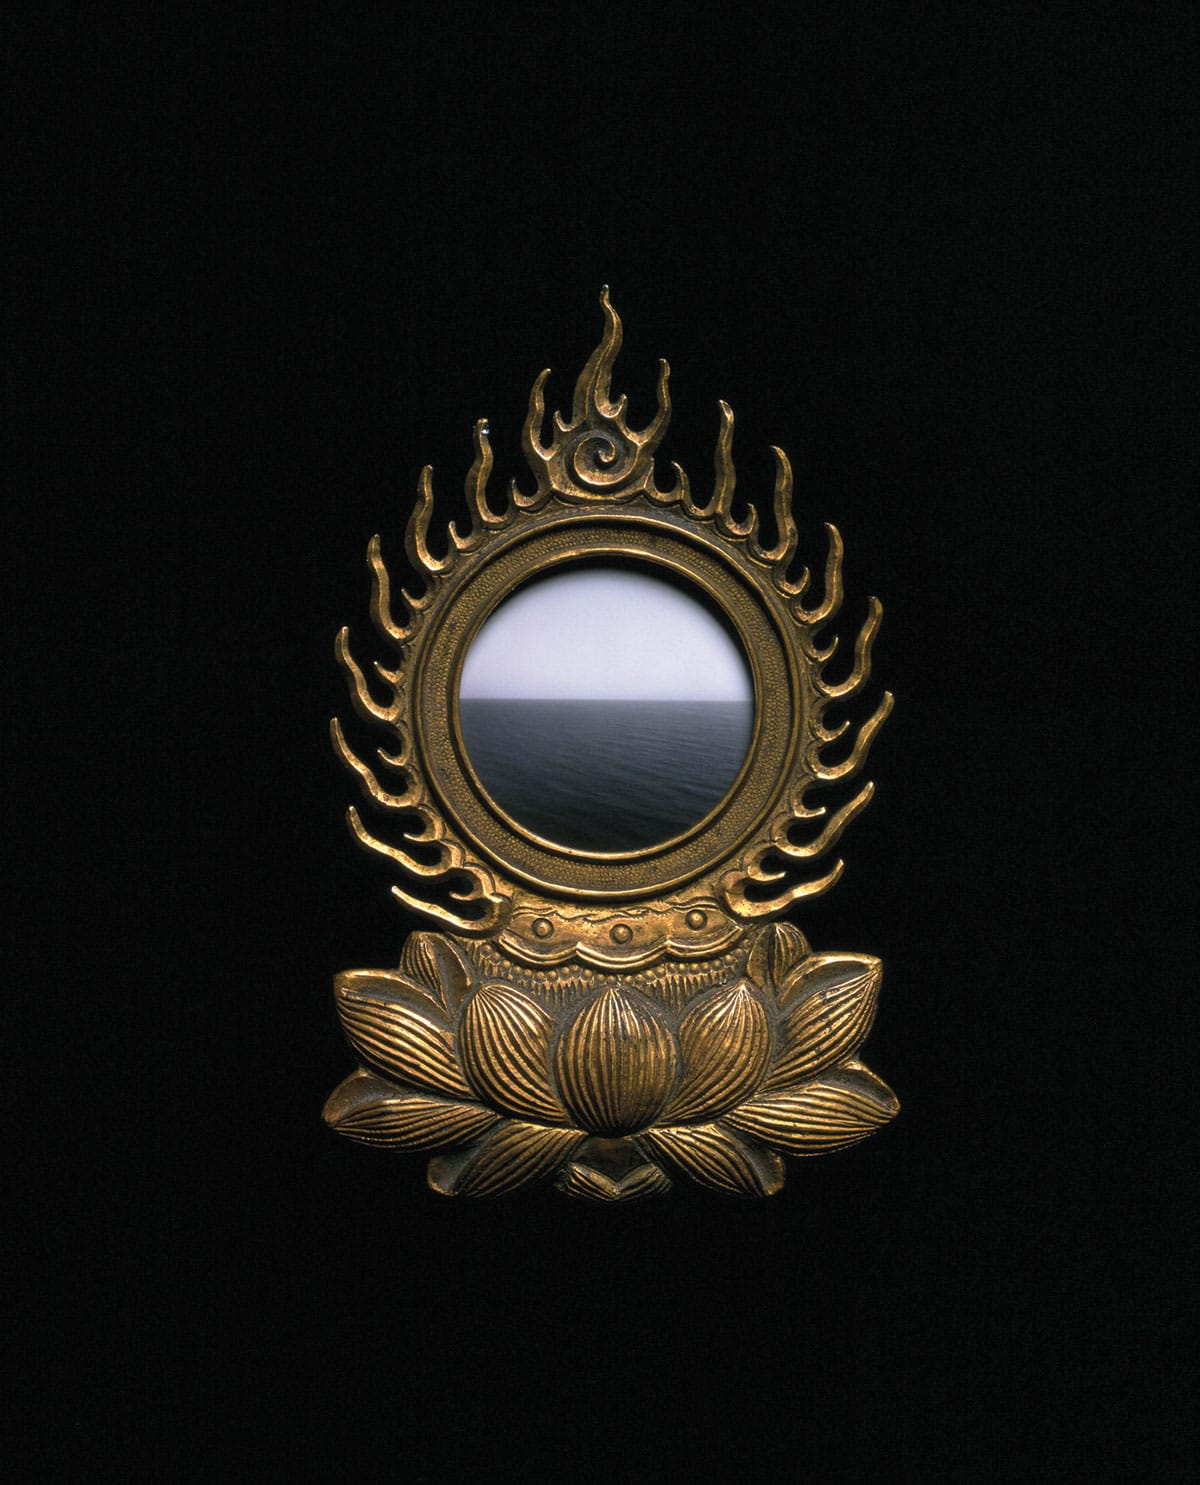 A brass mirror reflecting the ocean against a black wall.